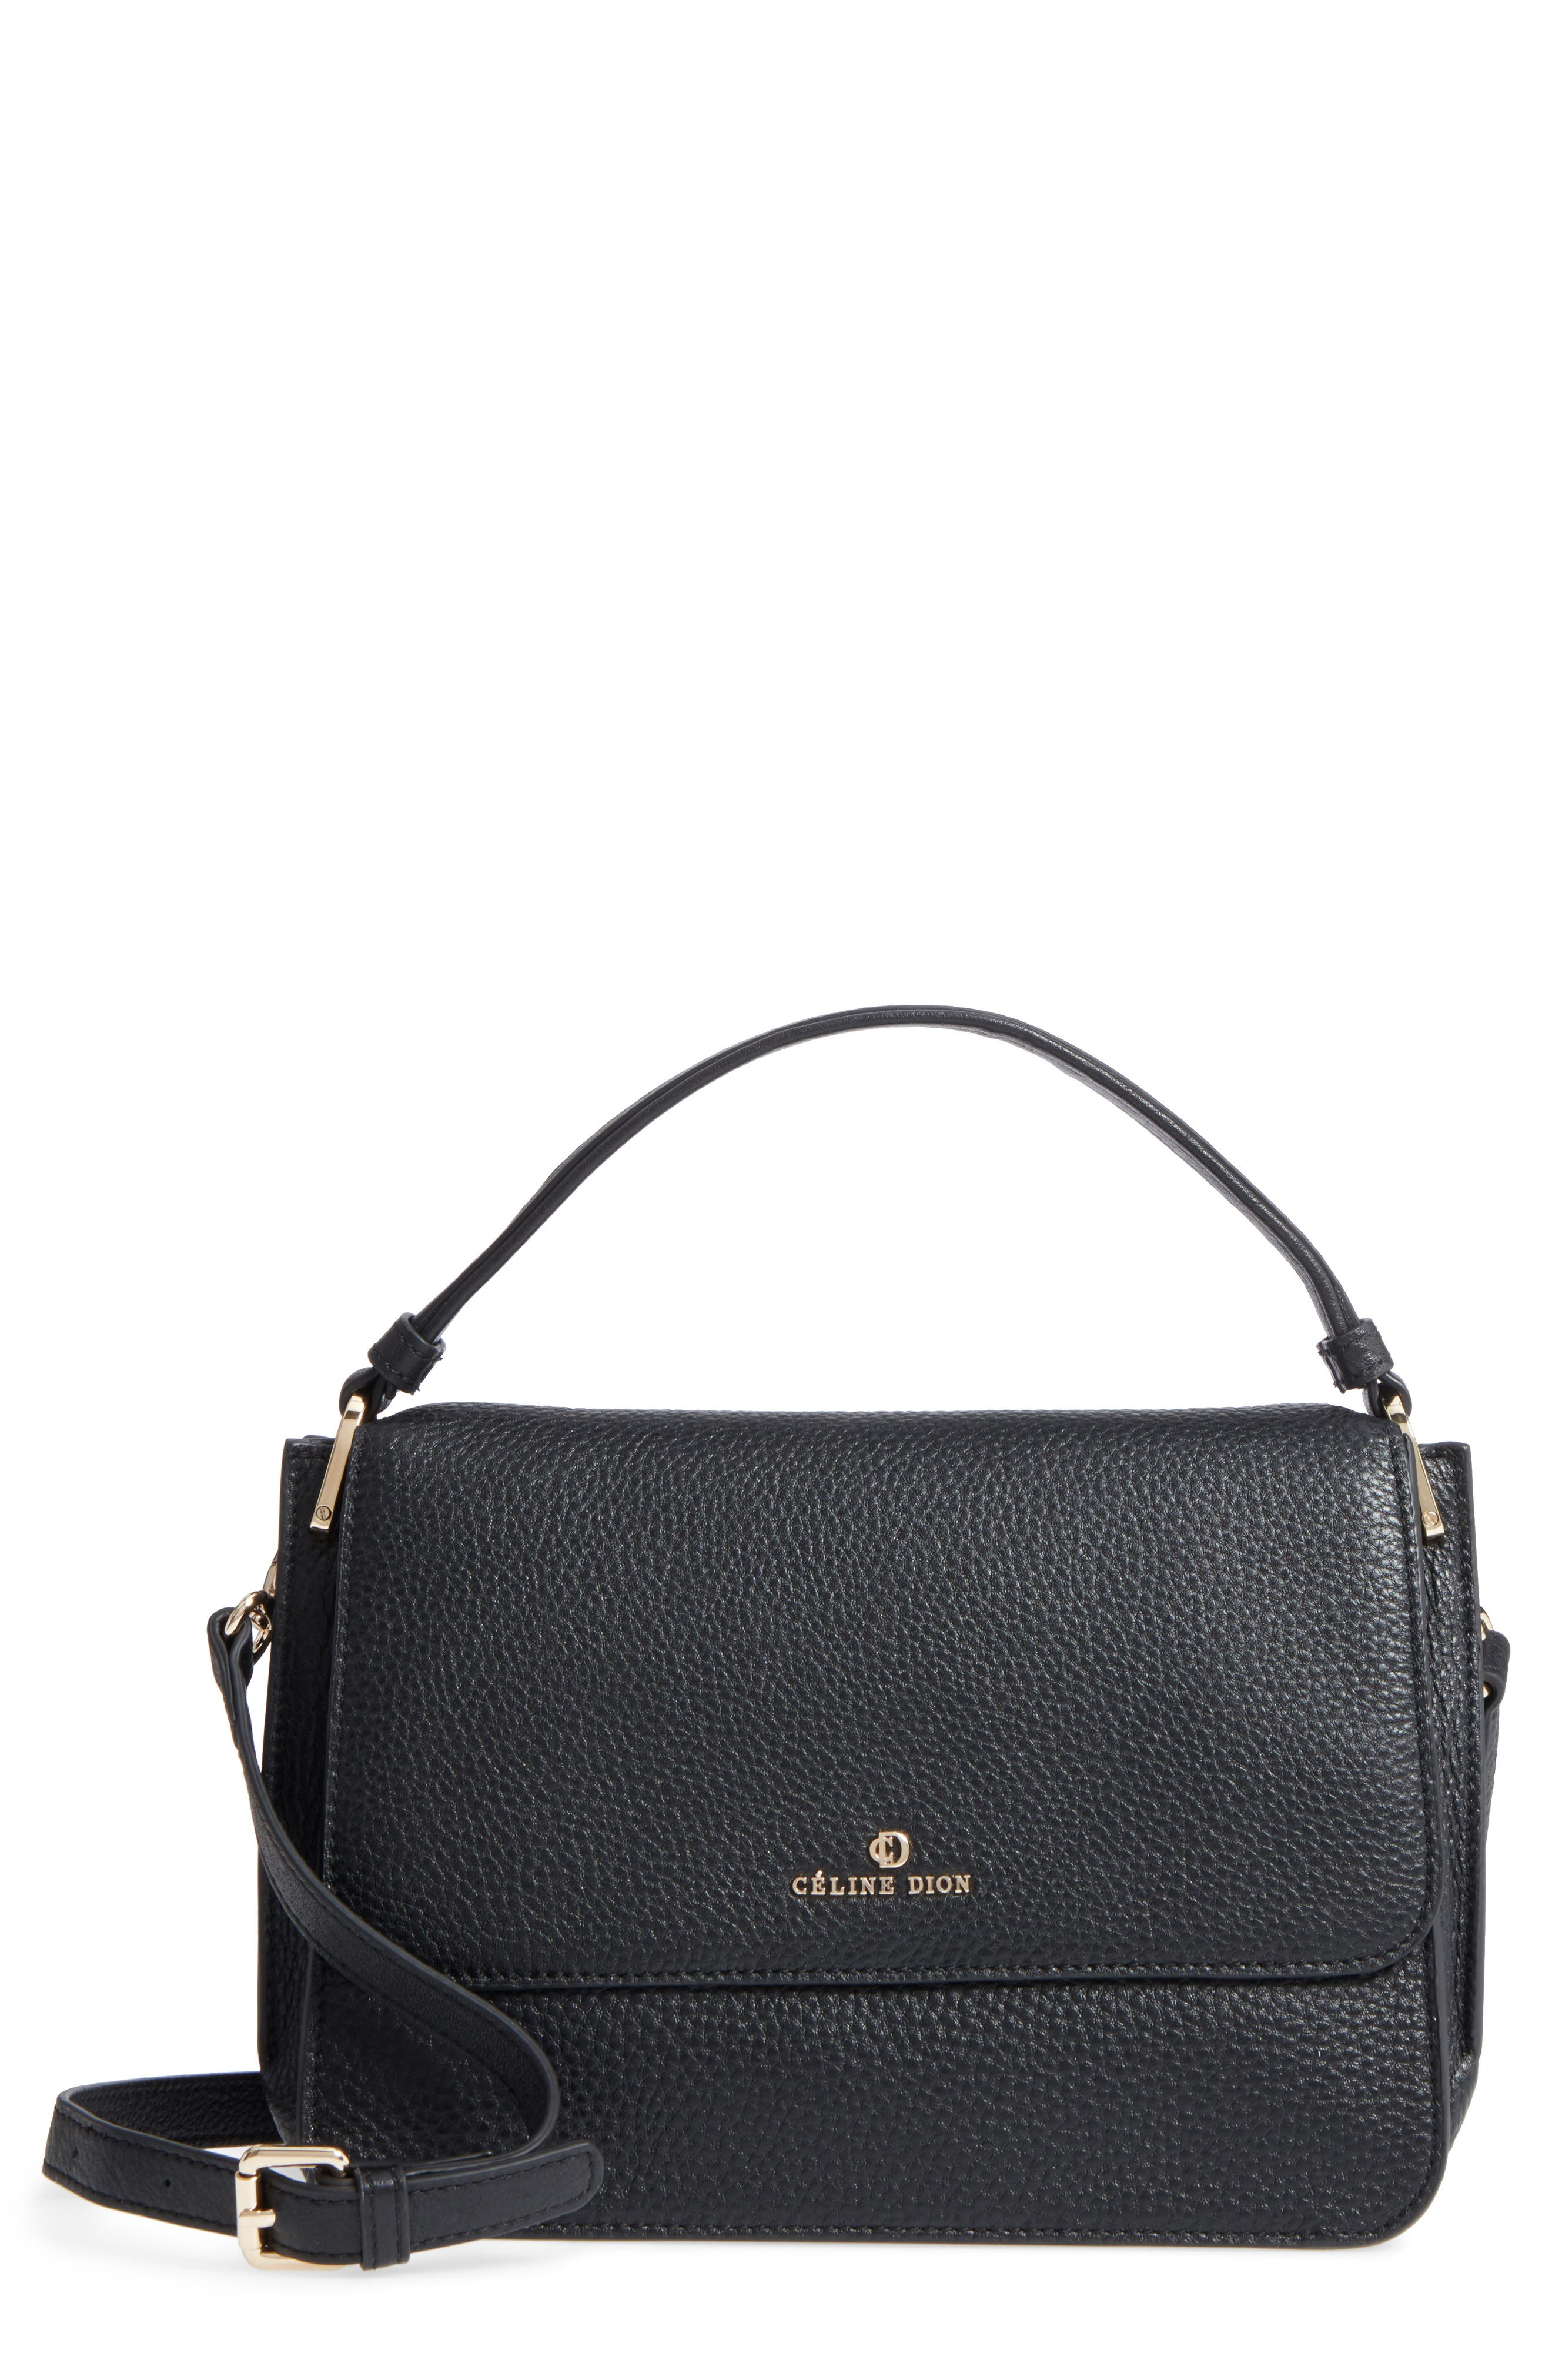 Céline Dion Adagio Leather Satchel